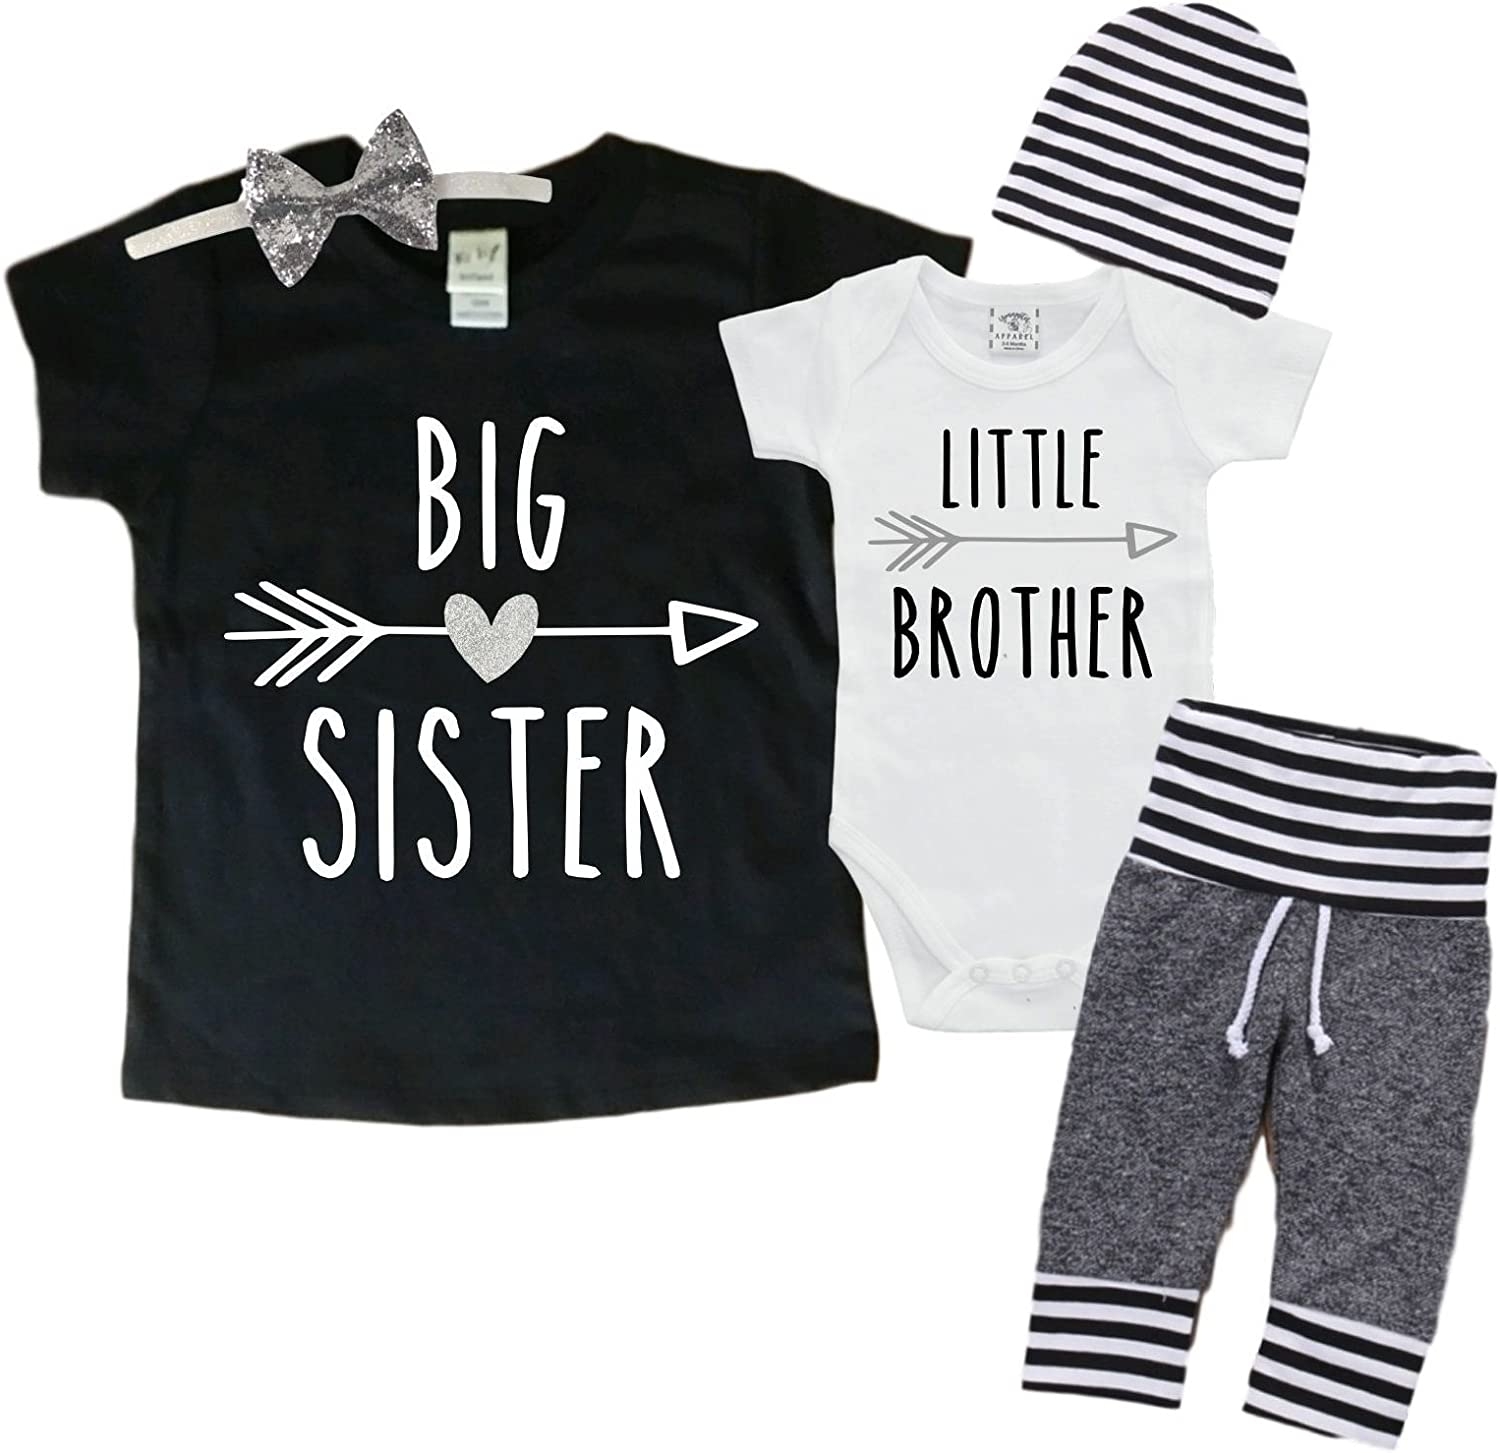 Big Sister Little Brother Set Matching Big Sister Little Brother Set 0 3mo Bodysuit Clothing